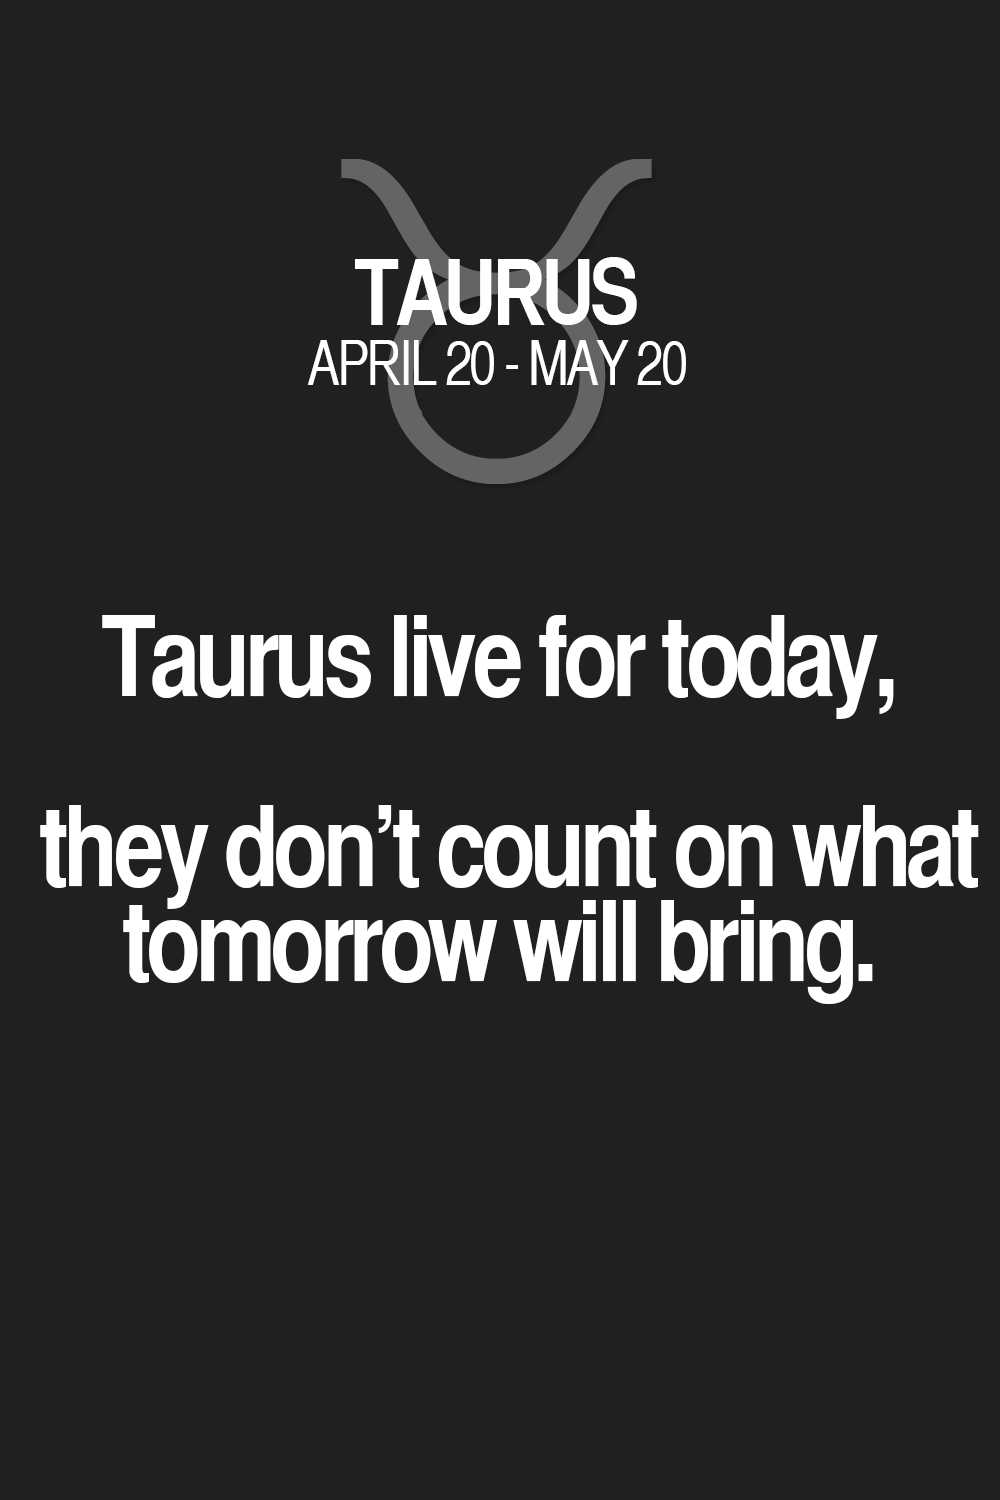 Taurus live for today, they don't count on what tomorrow